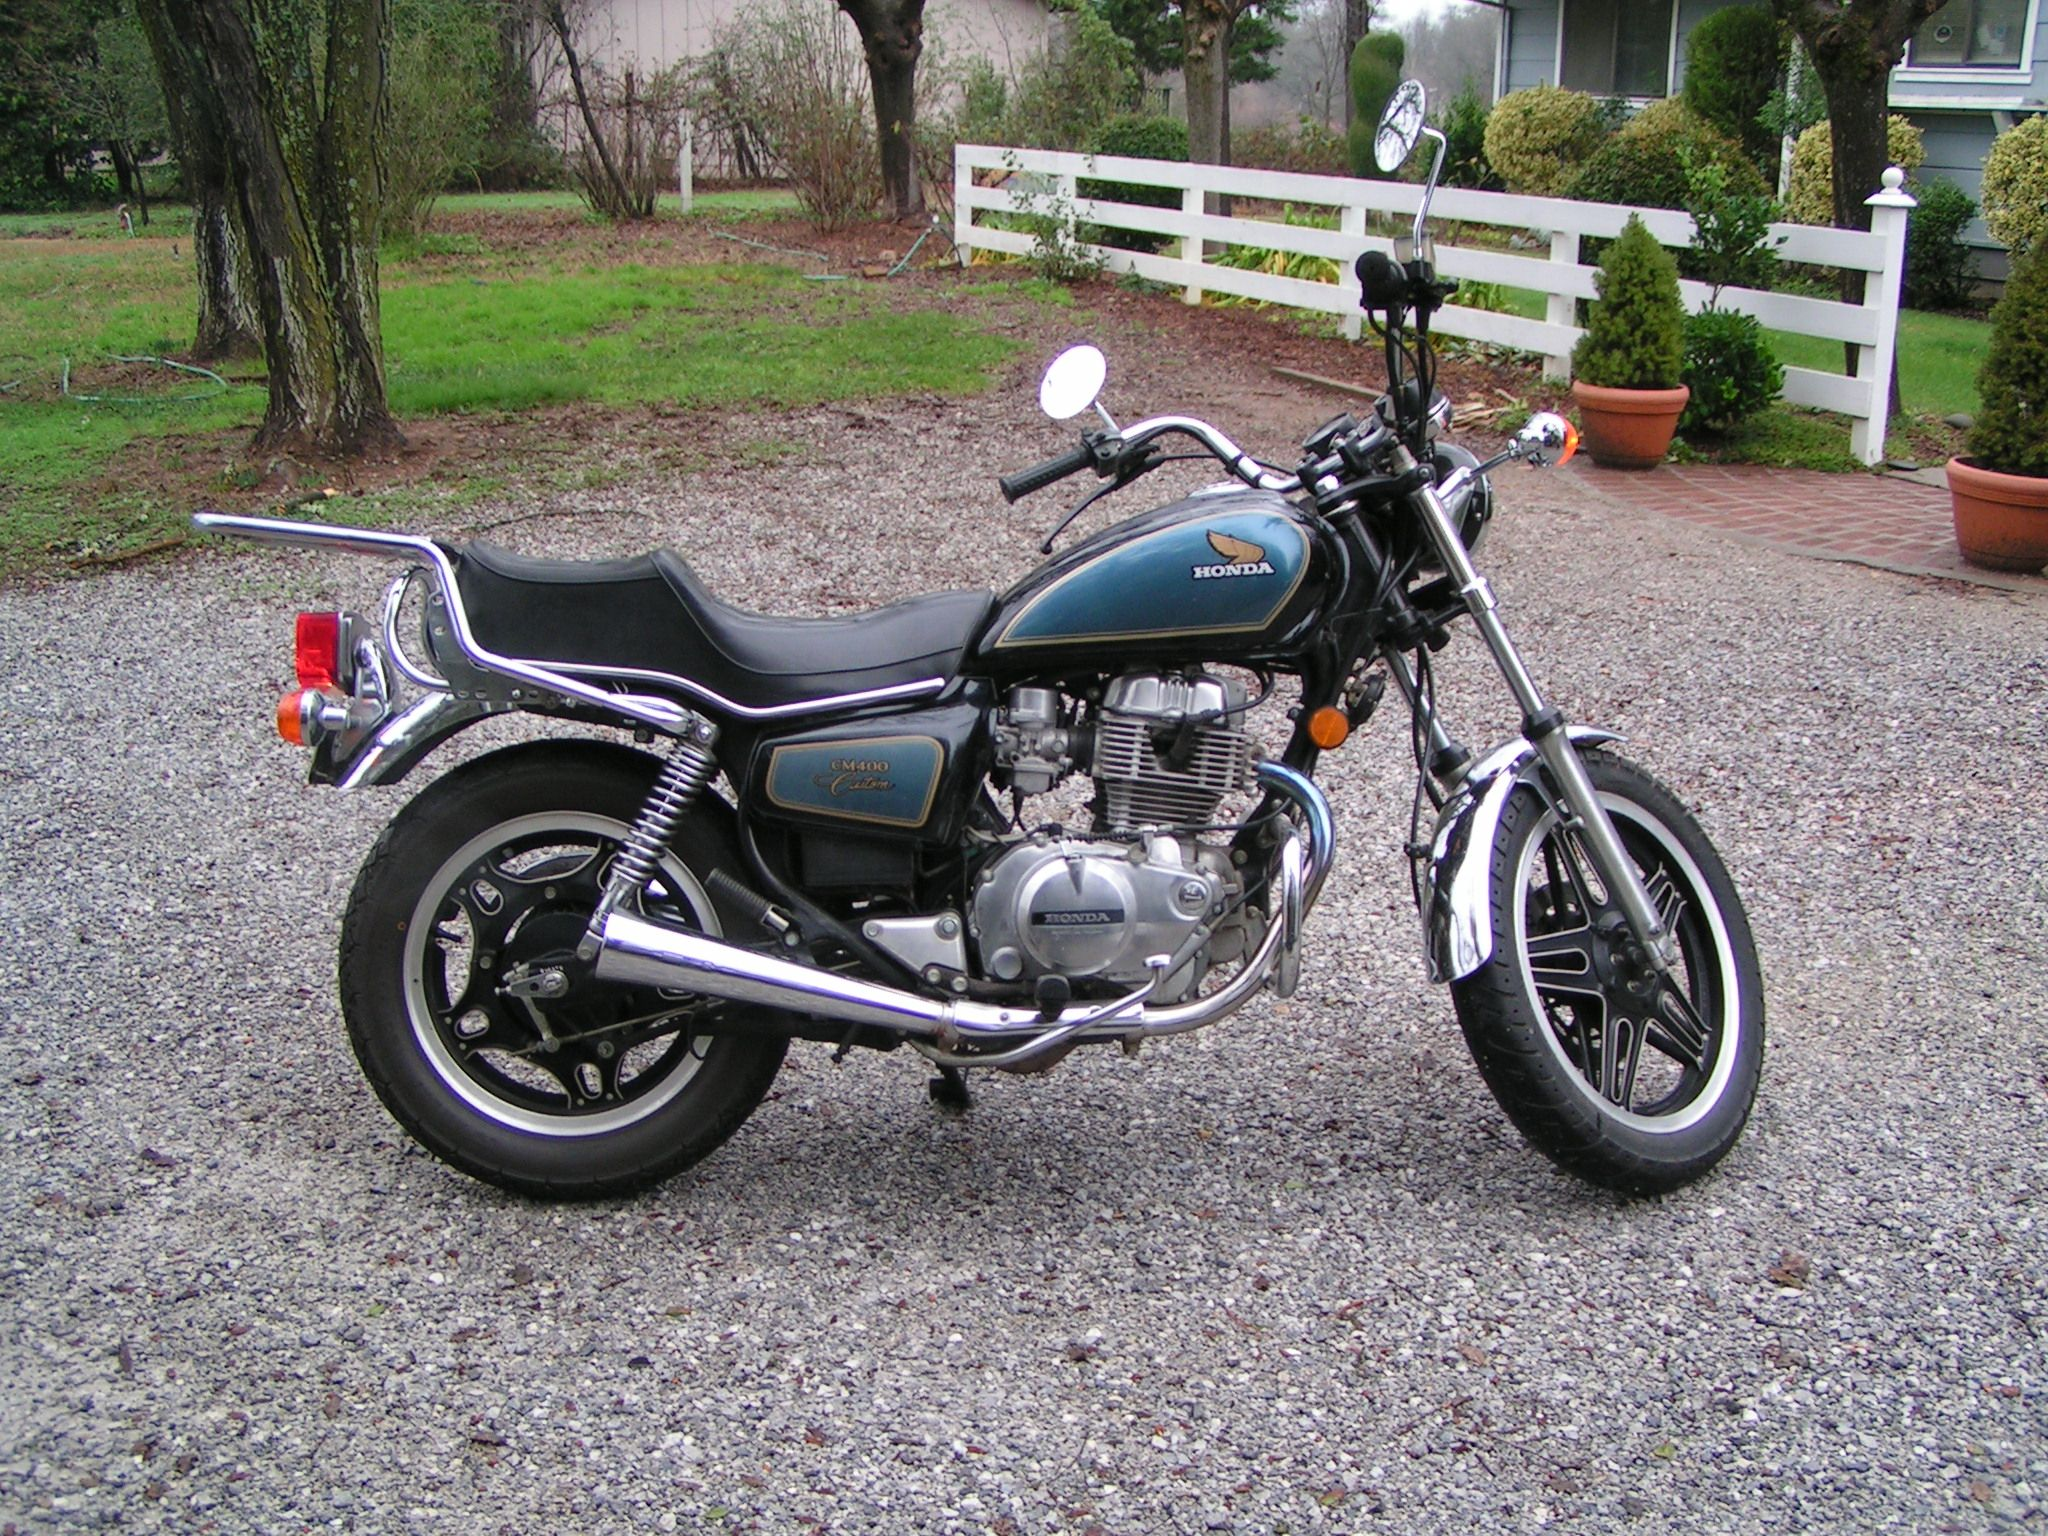 1981 honda cm 400 this is on craigslist right now and i. Black Bedroom Furniture Sets. Home Design Ideas